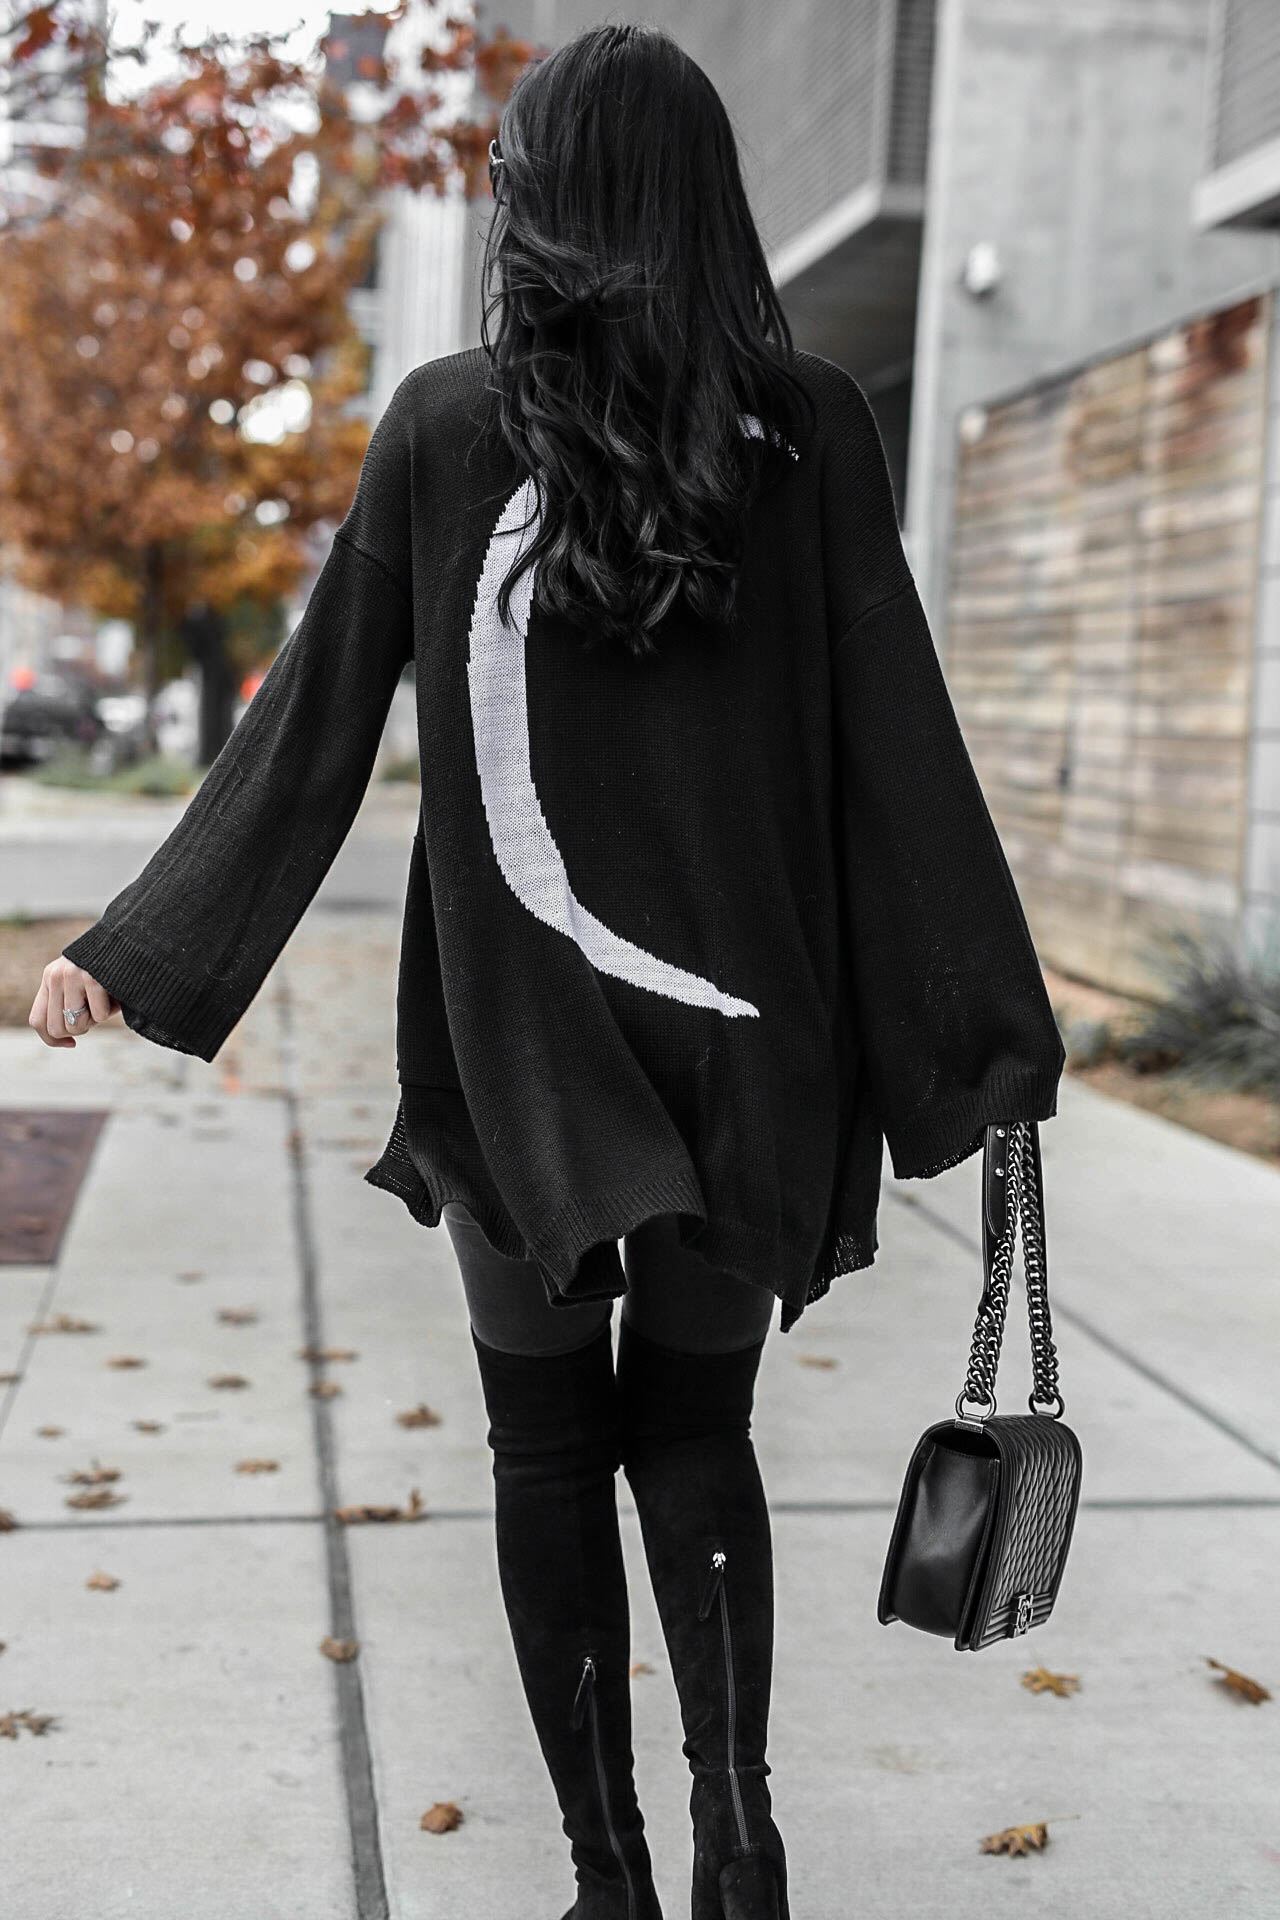 DTKAustin shares how to pull off an all black look as well as why she has an affinity for stars and moons. Cardigan from Show me Your Mumu. | black distressed jeans | Chanel handbag | OTK suede leather boots | all black fashion for women | all black outfit for winter | over the knee boots style || Dressed to Kill #otkboots #allblack #distressedjeans